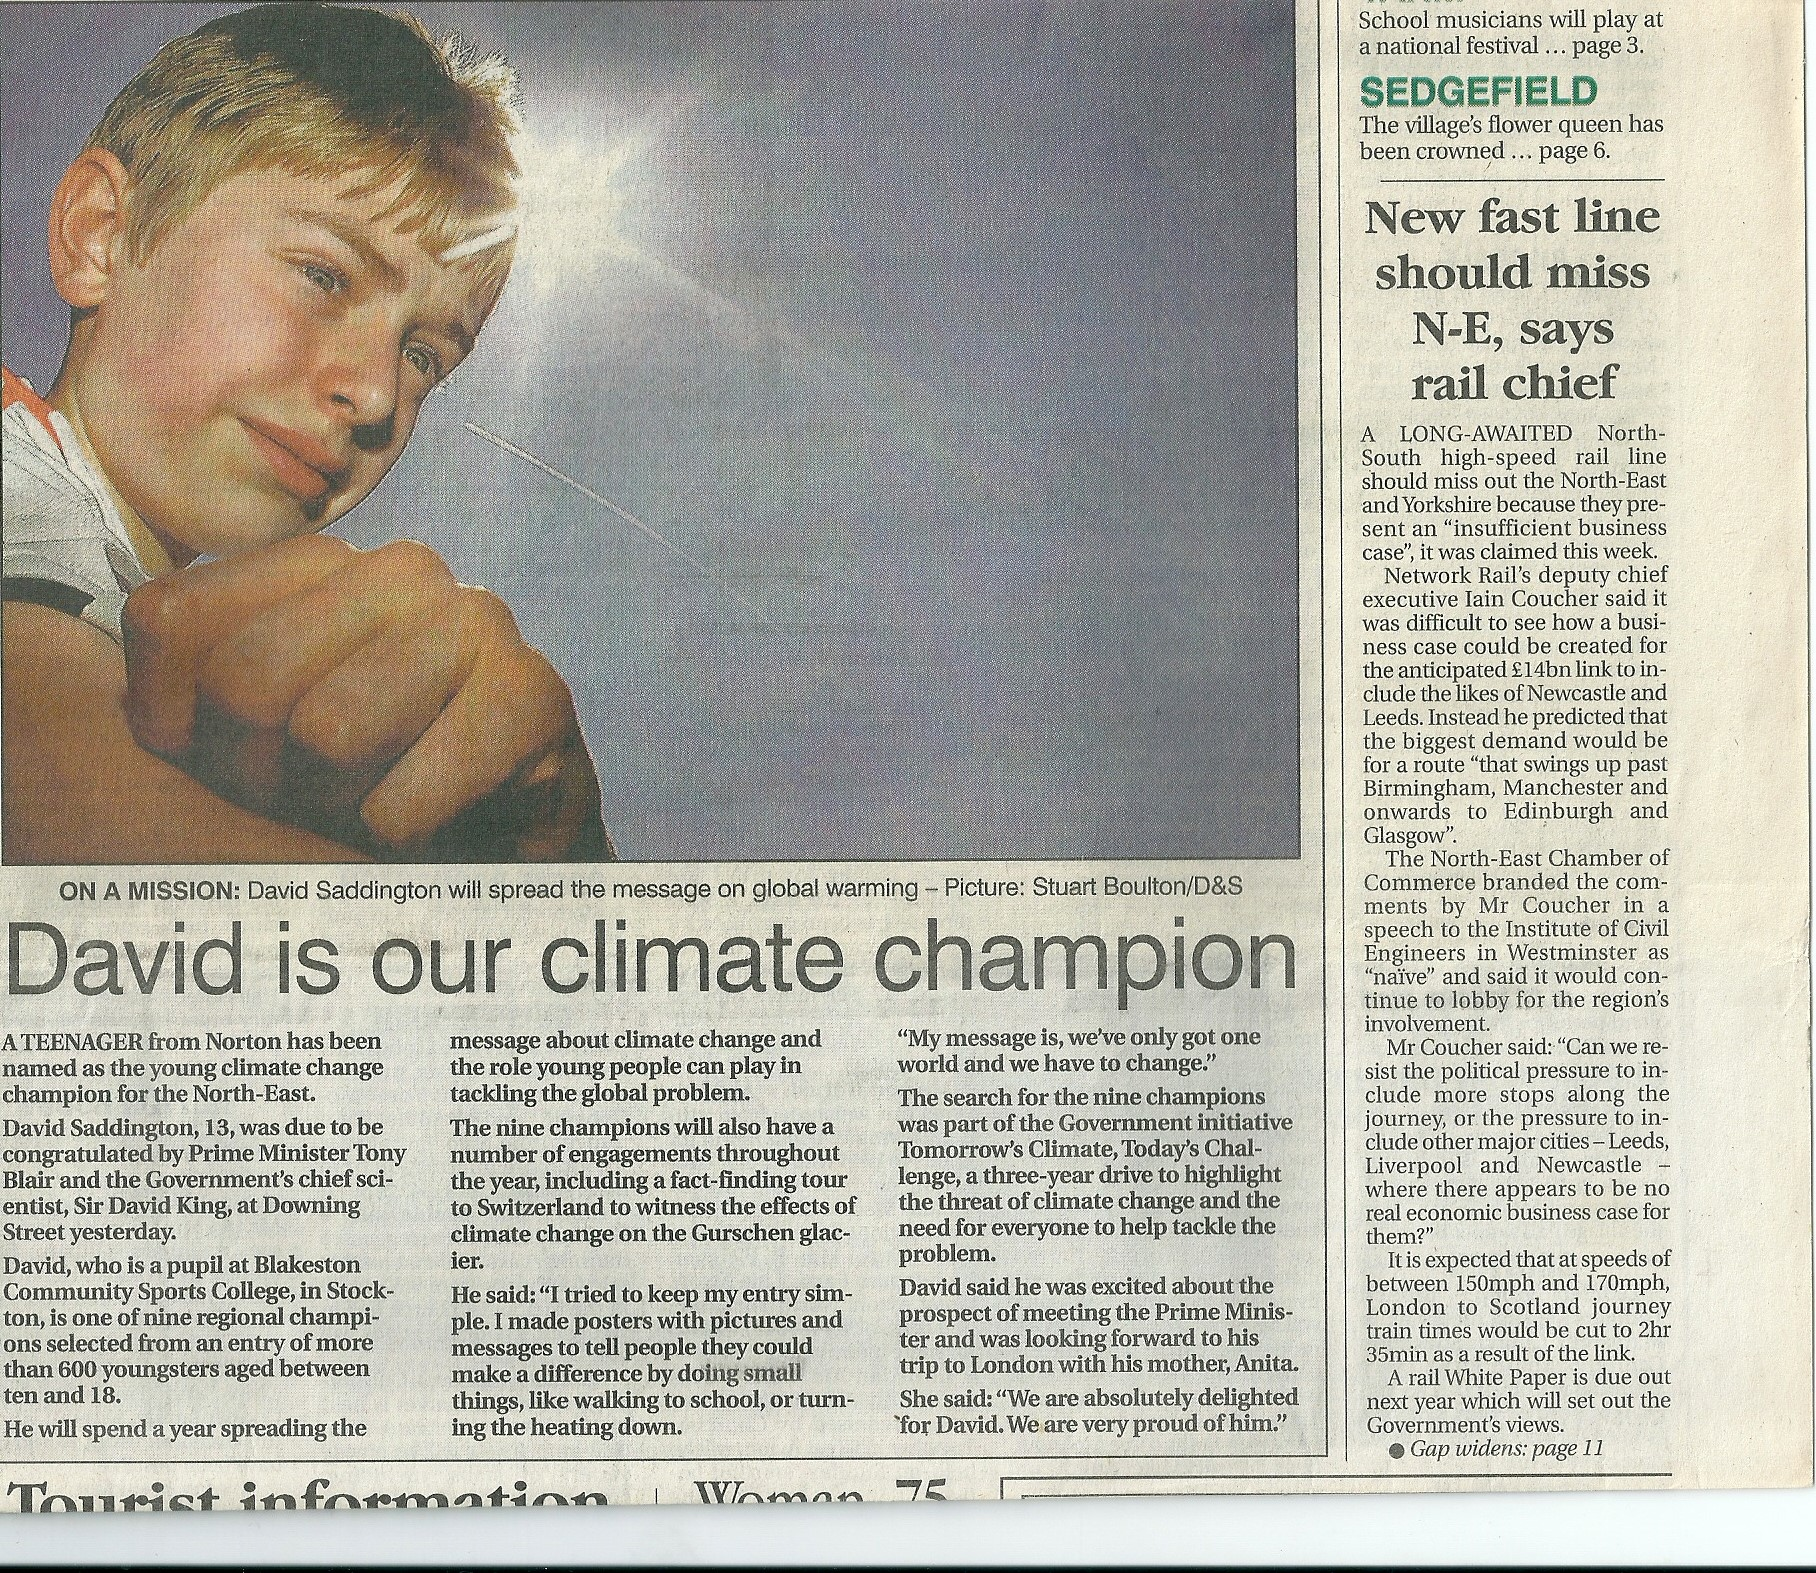 David is our climate champion